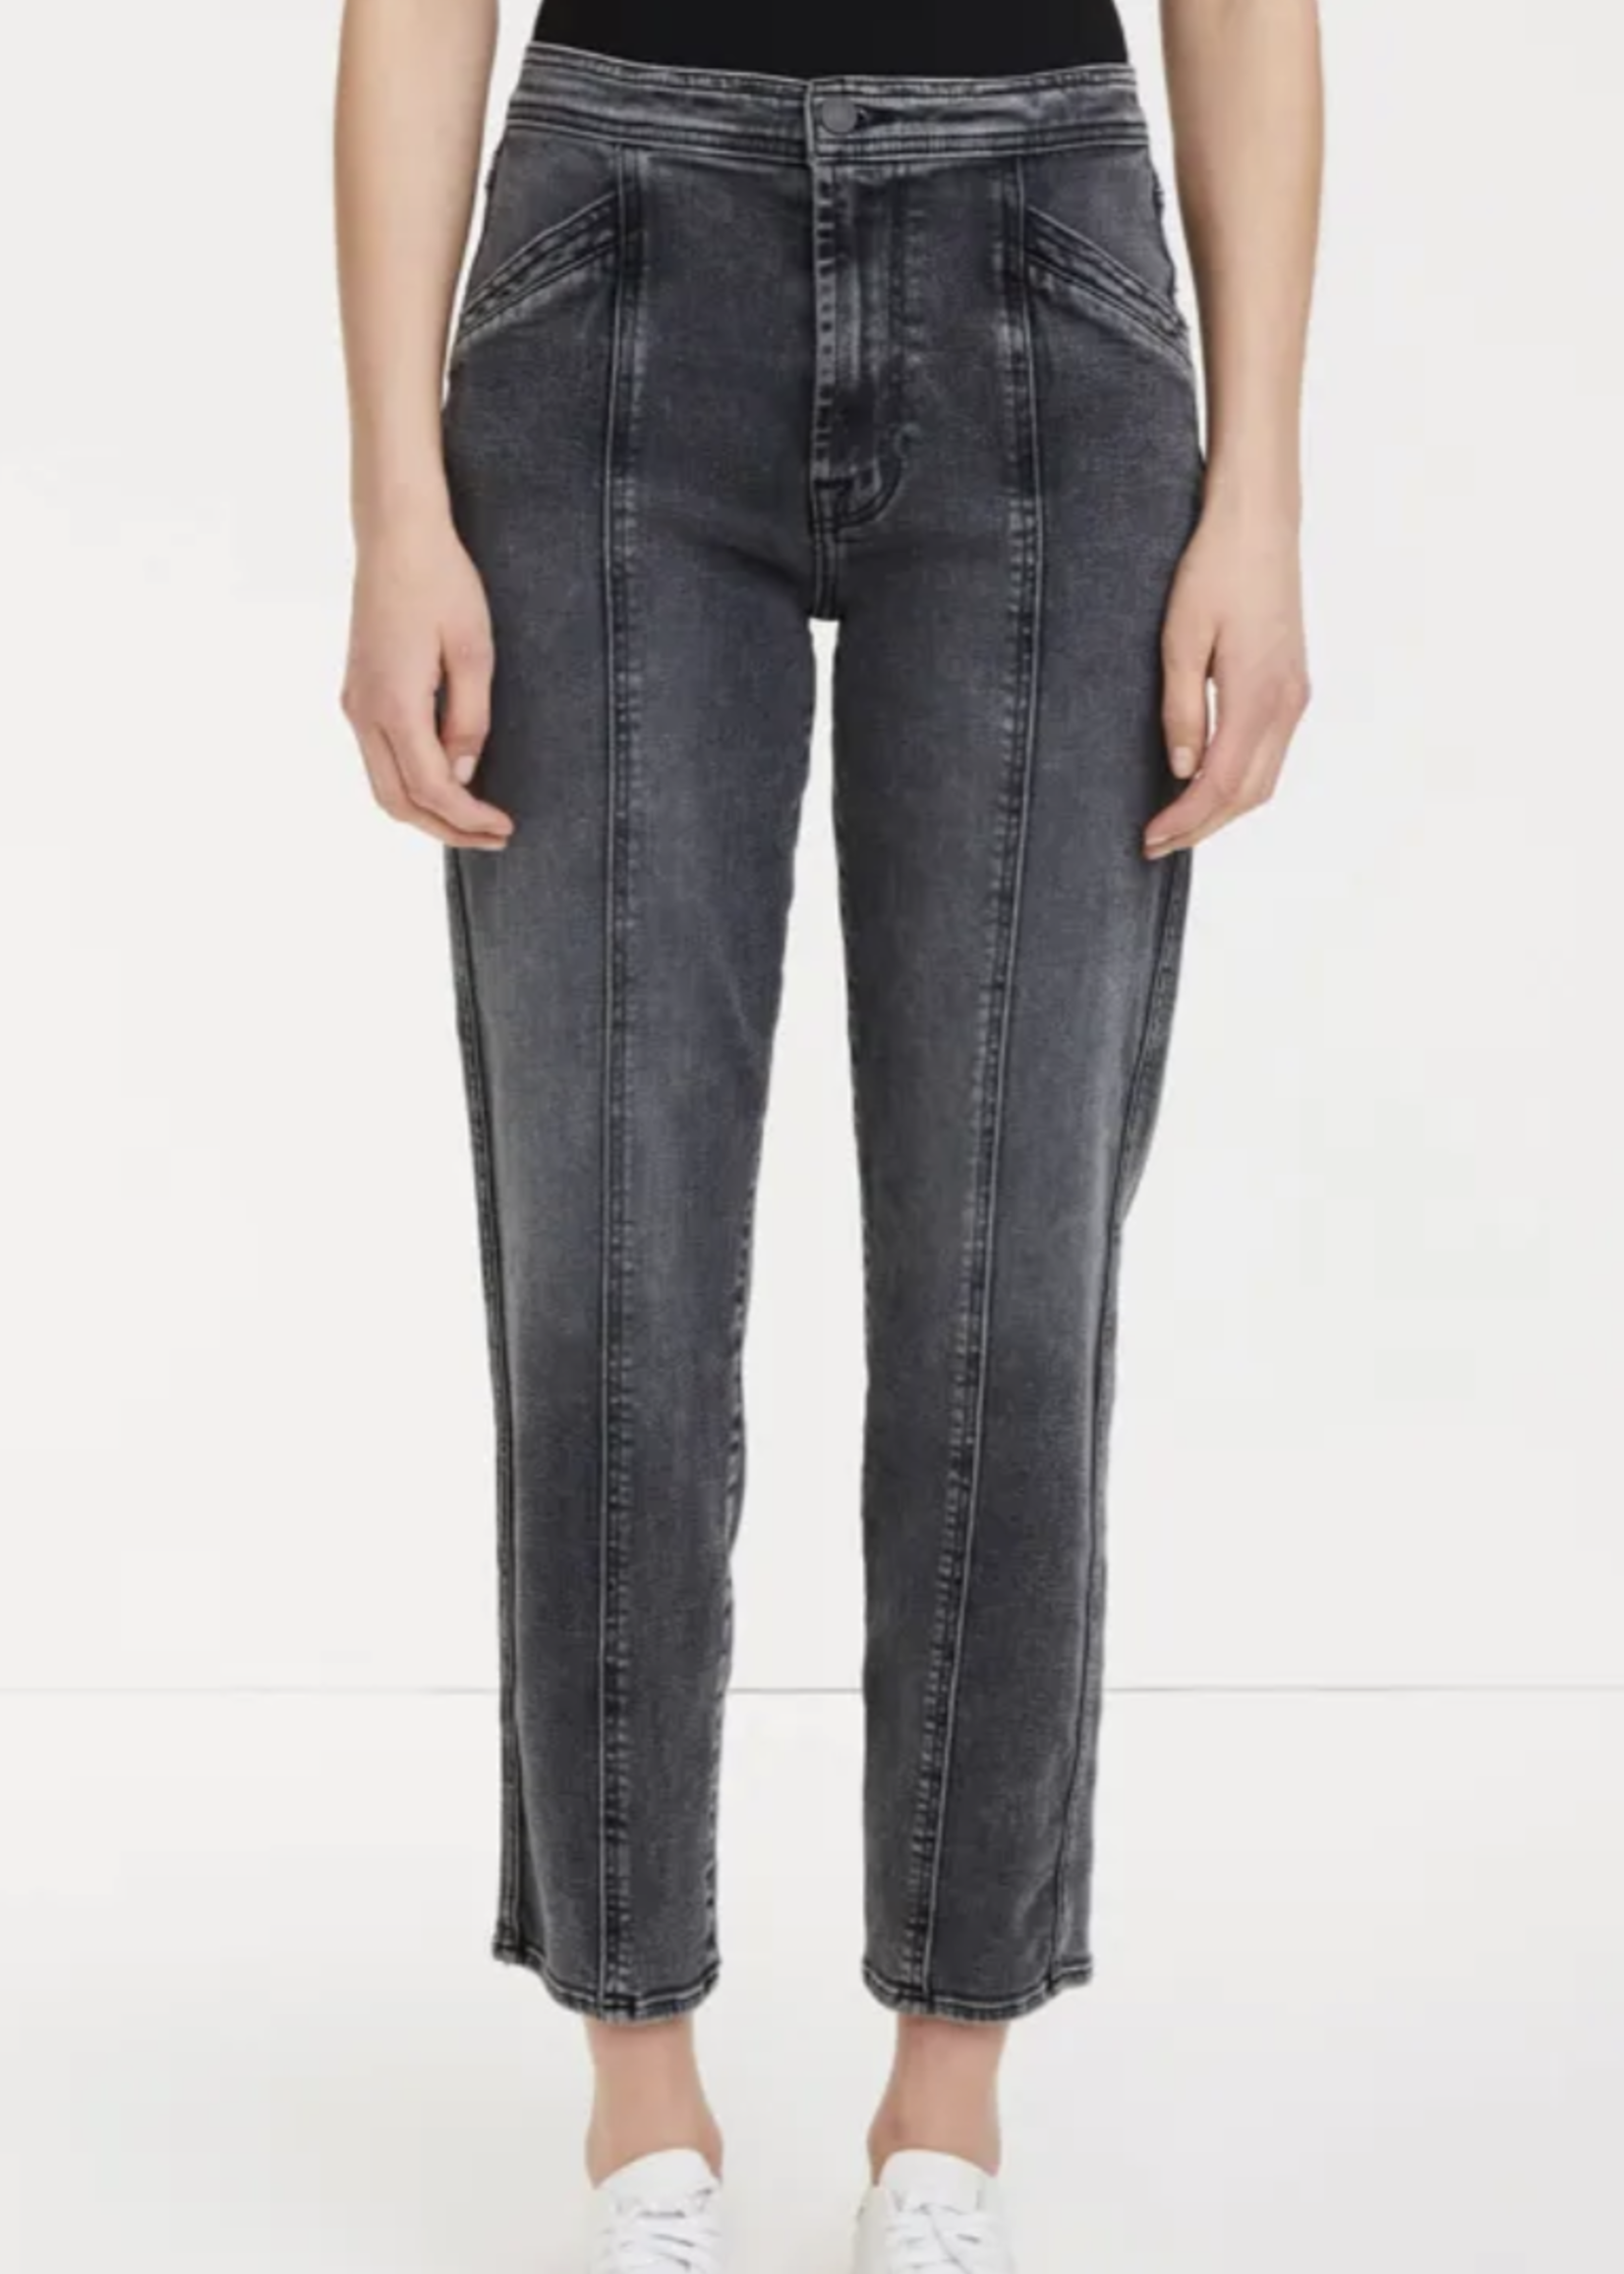 7 For All Mankind 7 For All Mankind Abbey Luxe Vintage Seam Jean